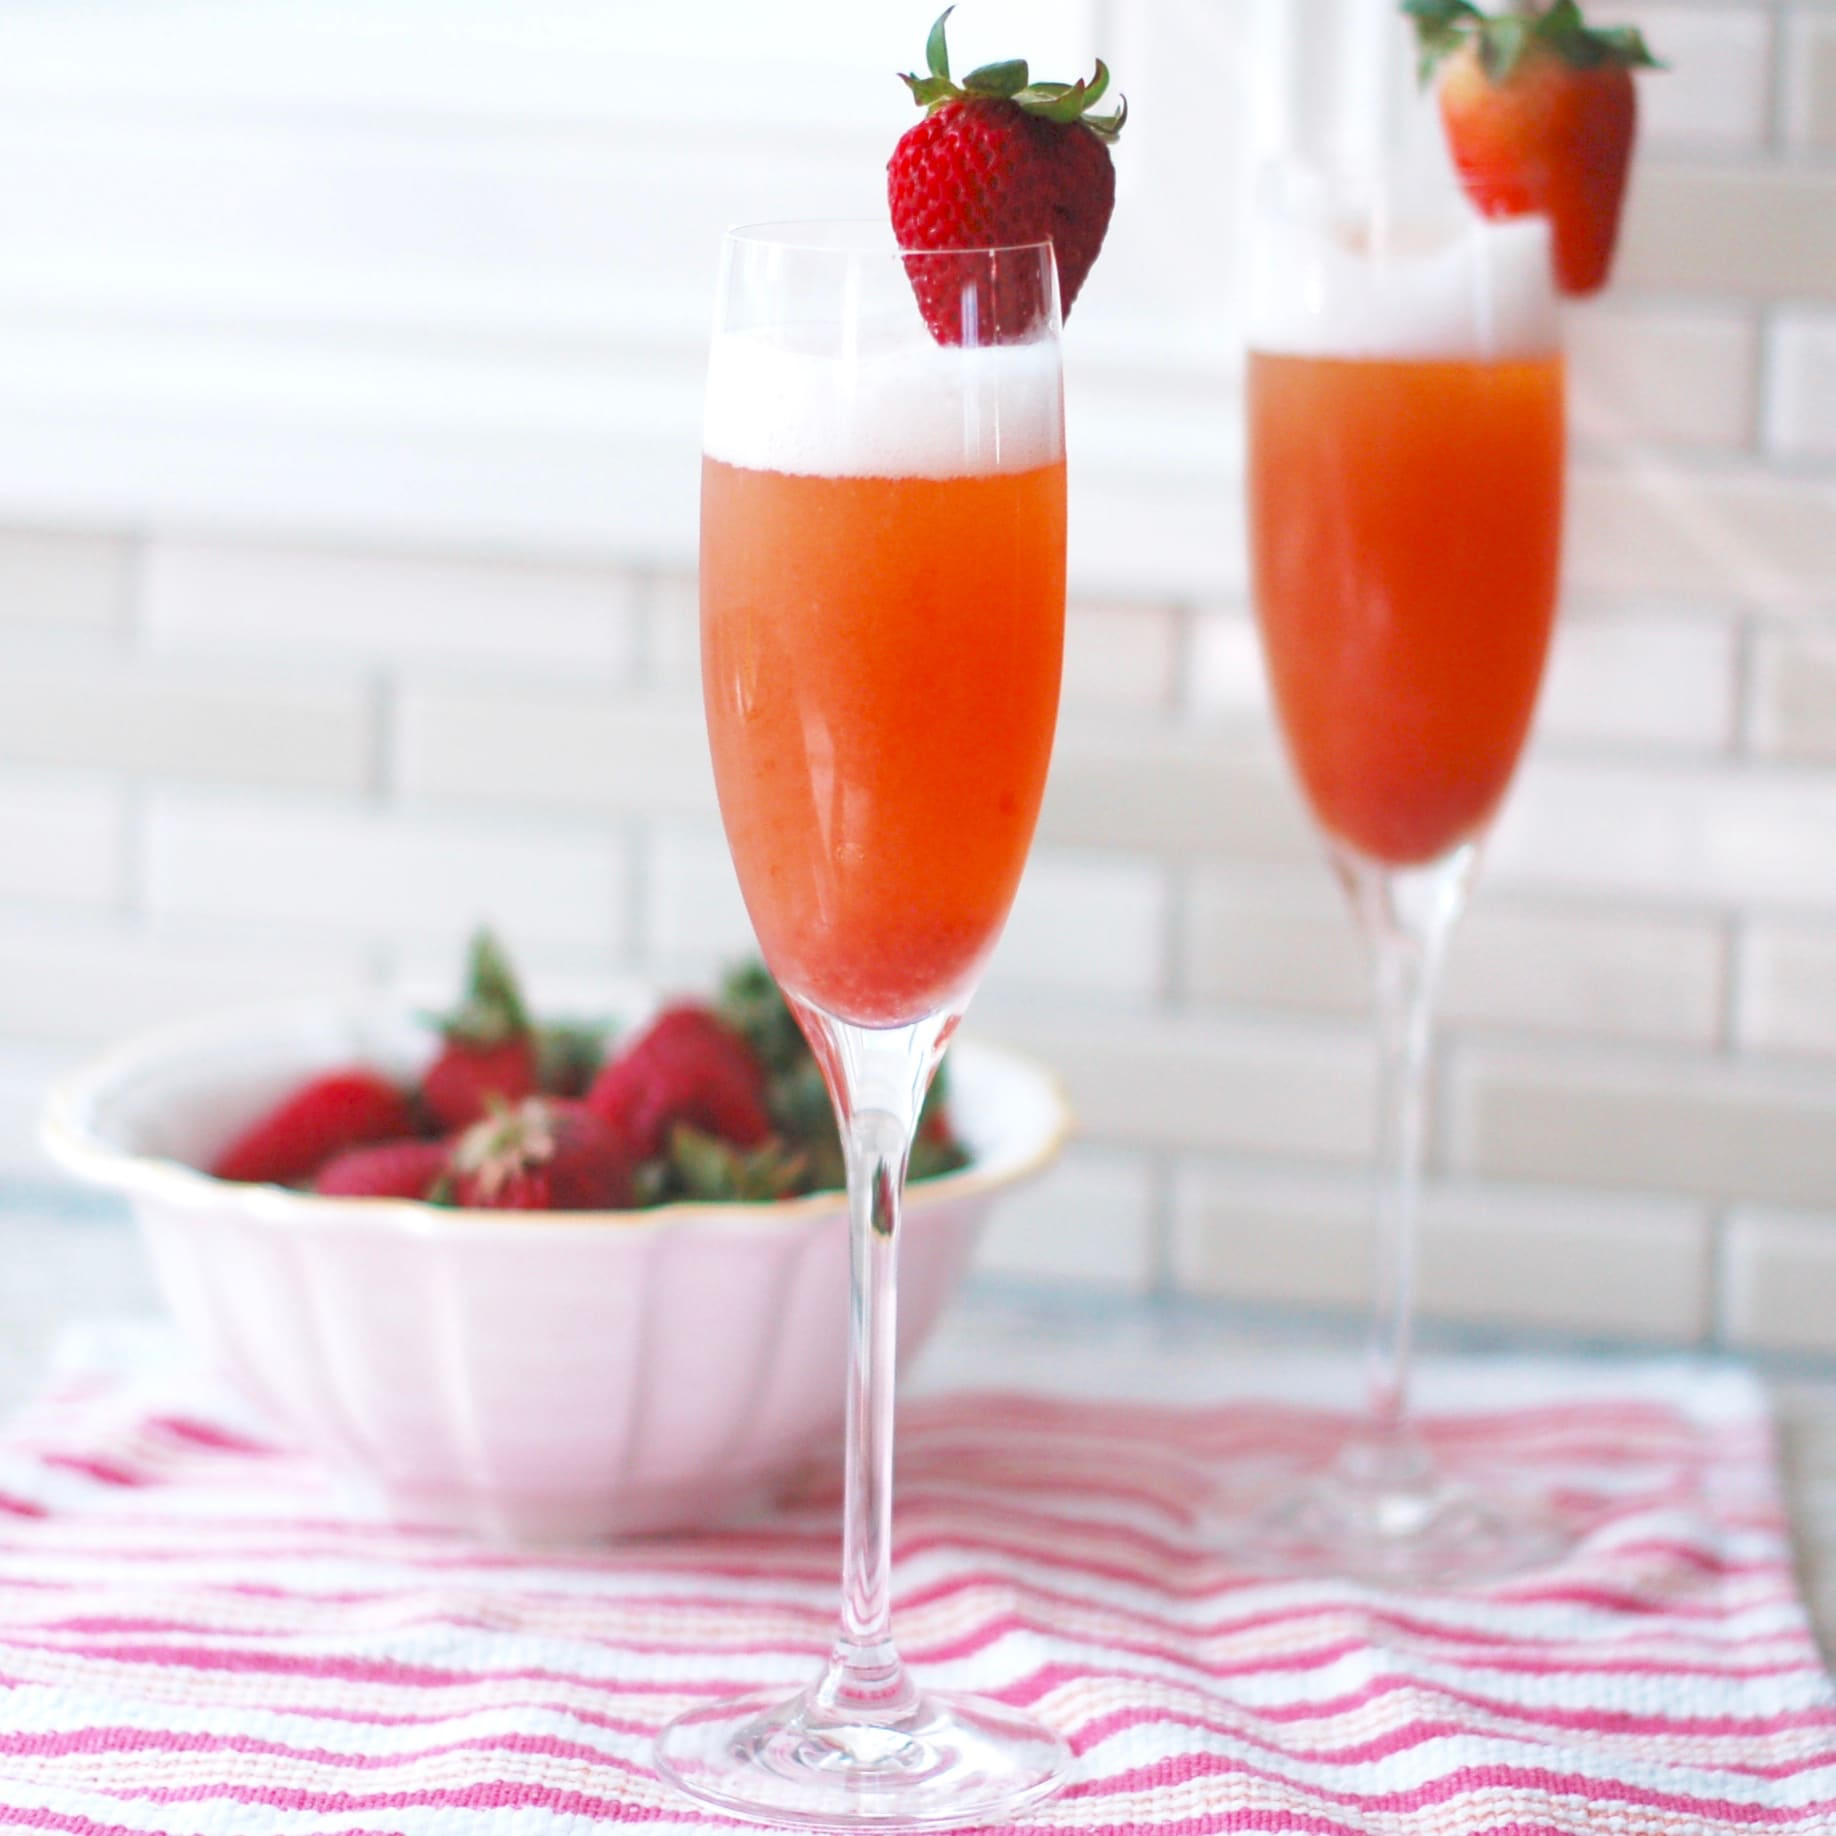 Strawberry Rhubarb Mimosa Brunch Cocktail Recipe